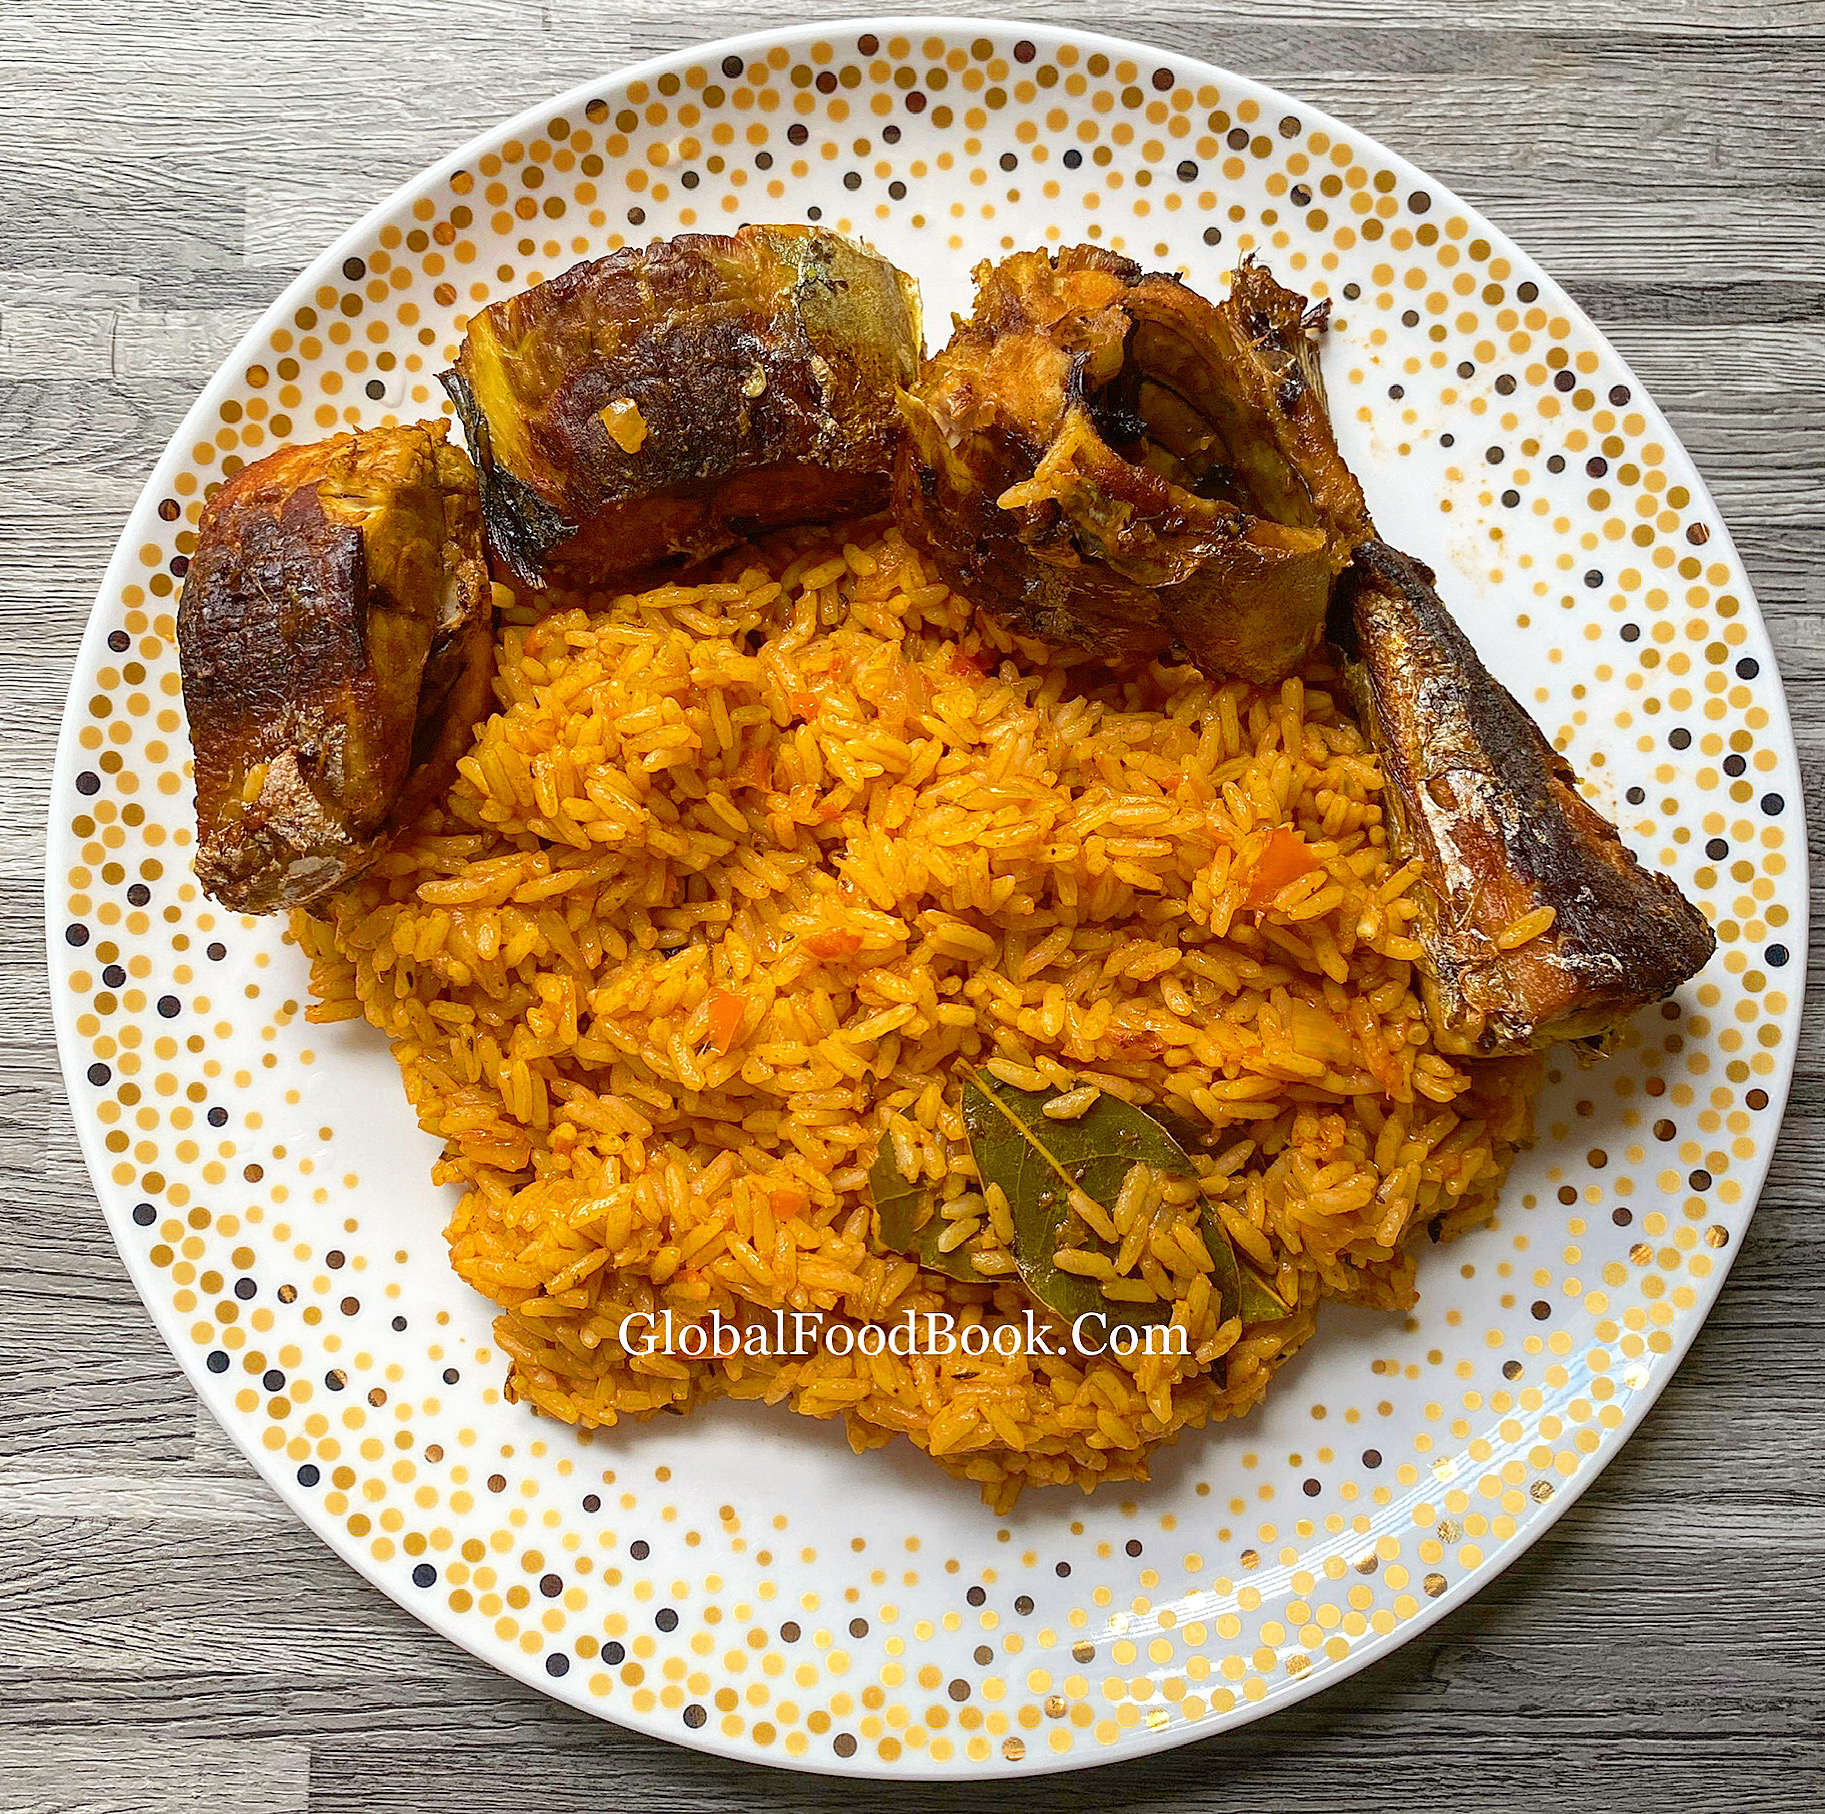 JOLLOF RICE AND FRIED FISH